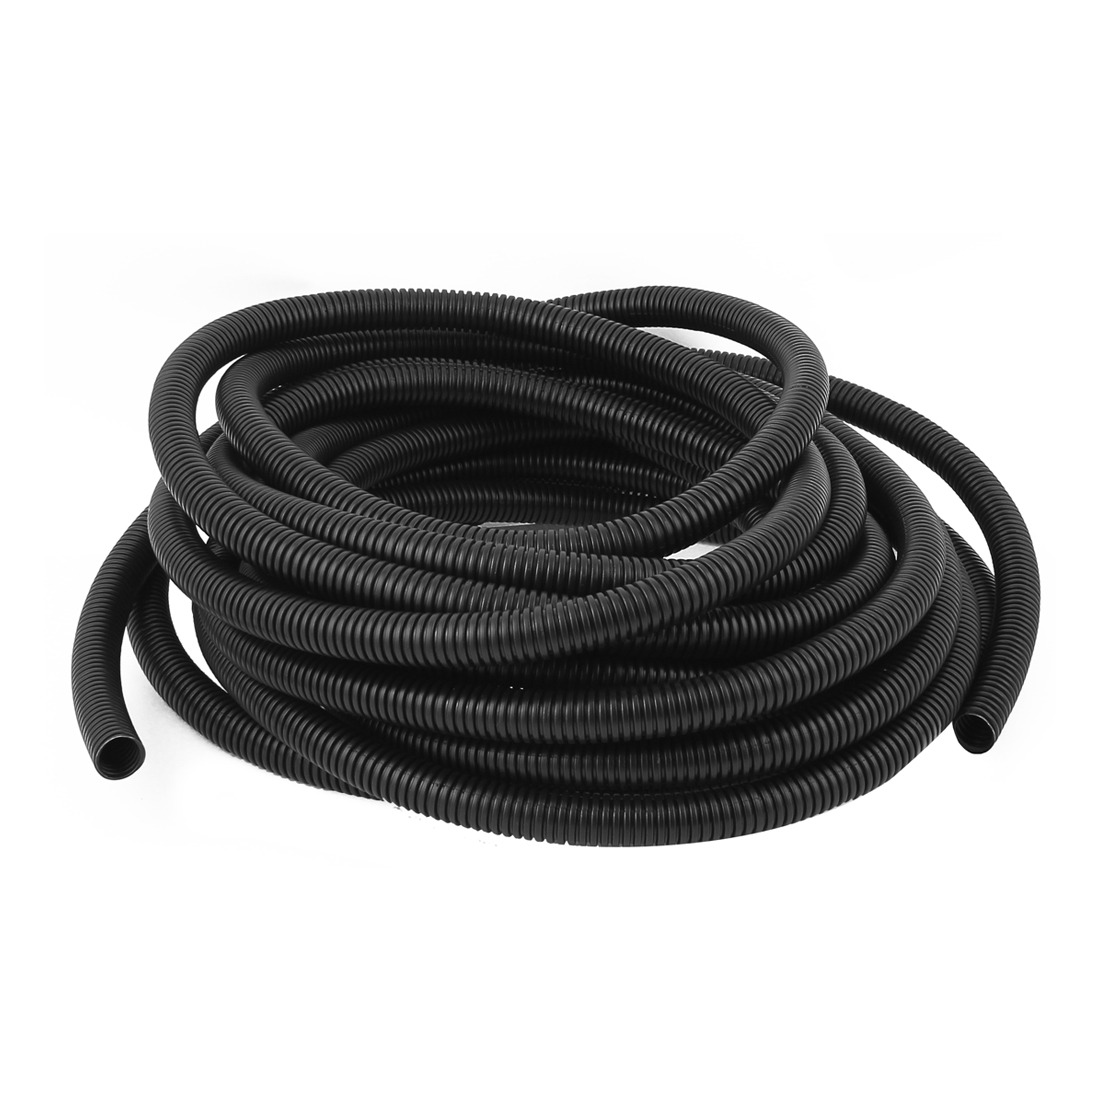 10M Length 16mm OD Corrugated Flexible Wire Cable Conduit Tubing Tube Pipe Black